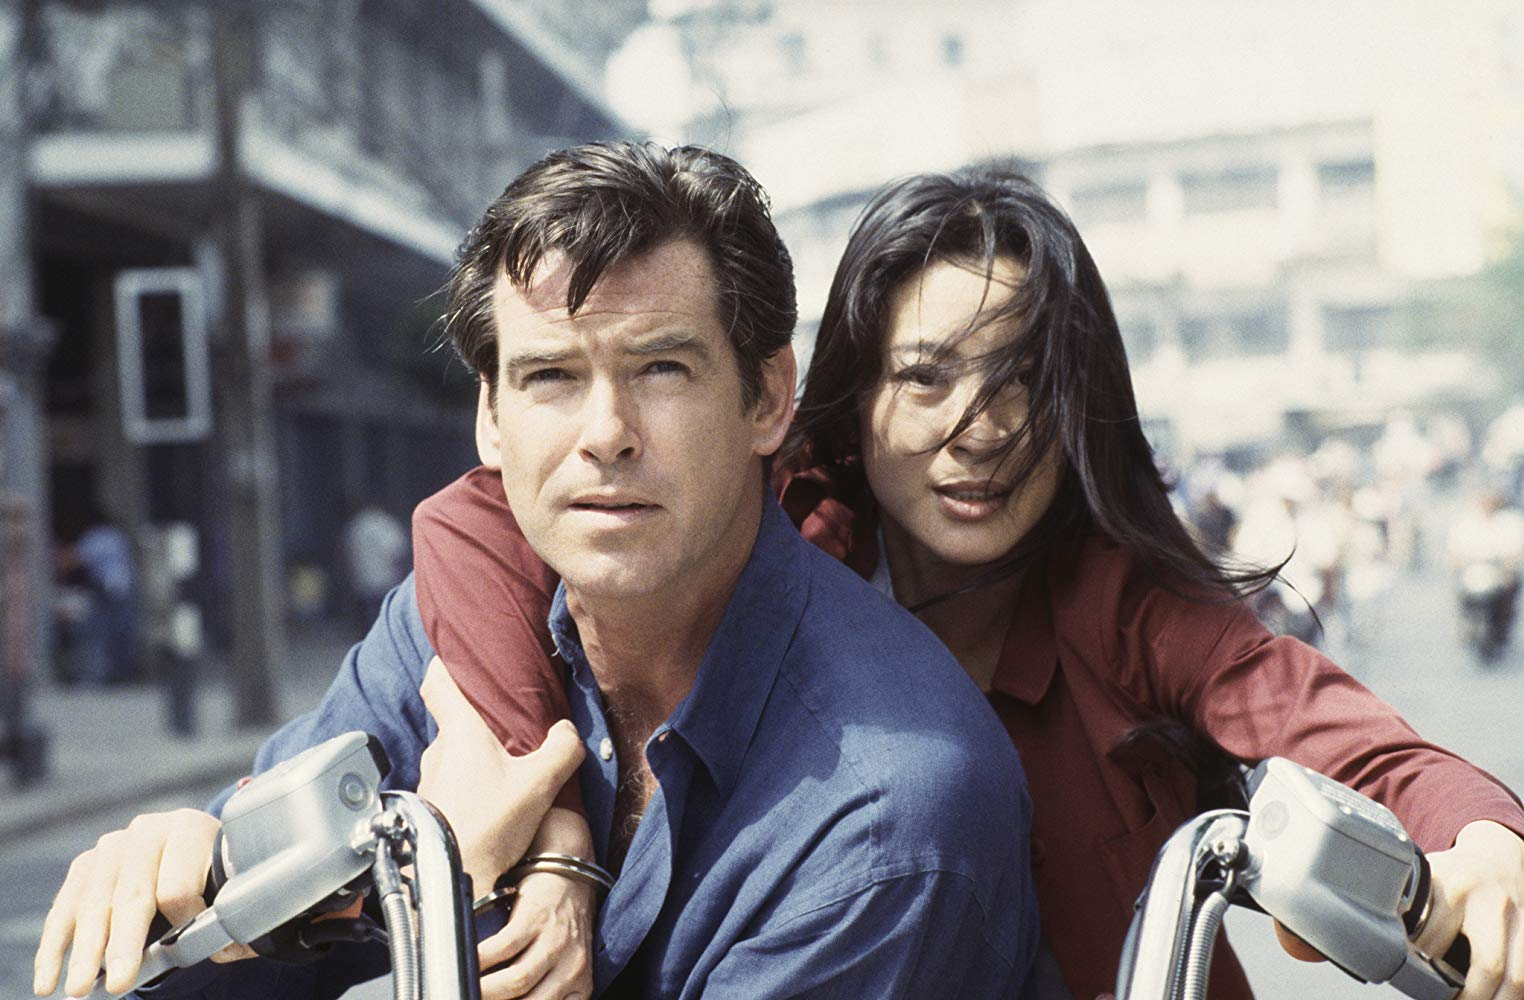 Pierce Brosnan as James Bond with Michelle Yeoh in Tomorrow Never Dies (1997)